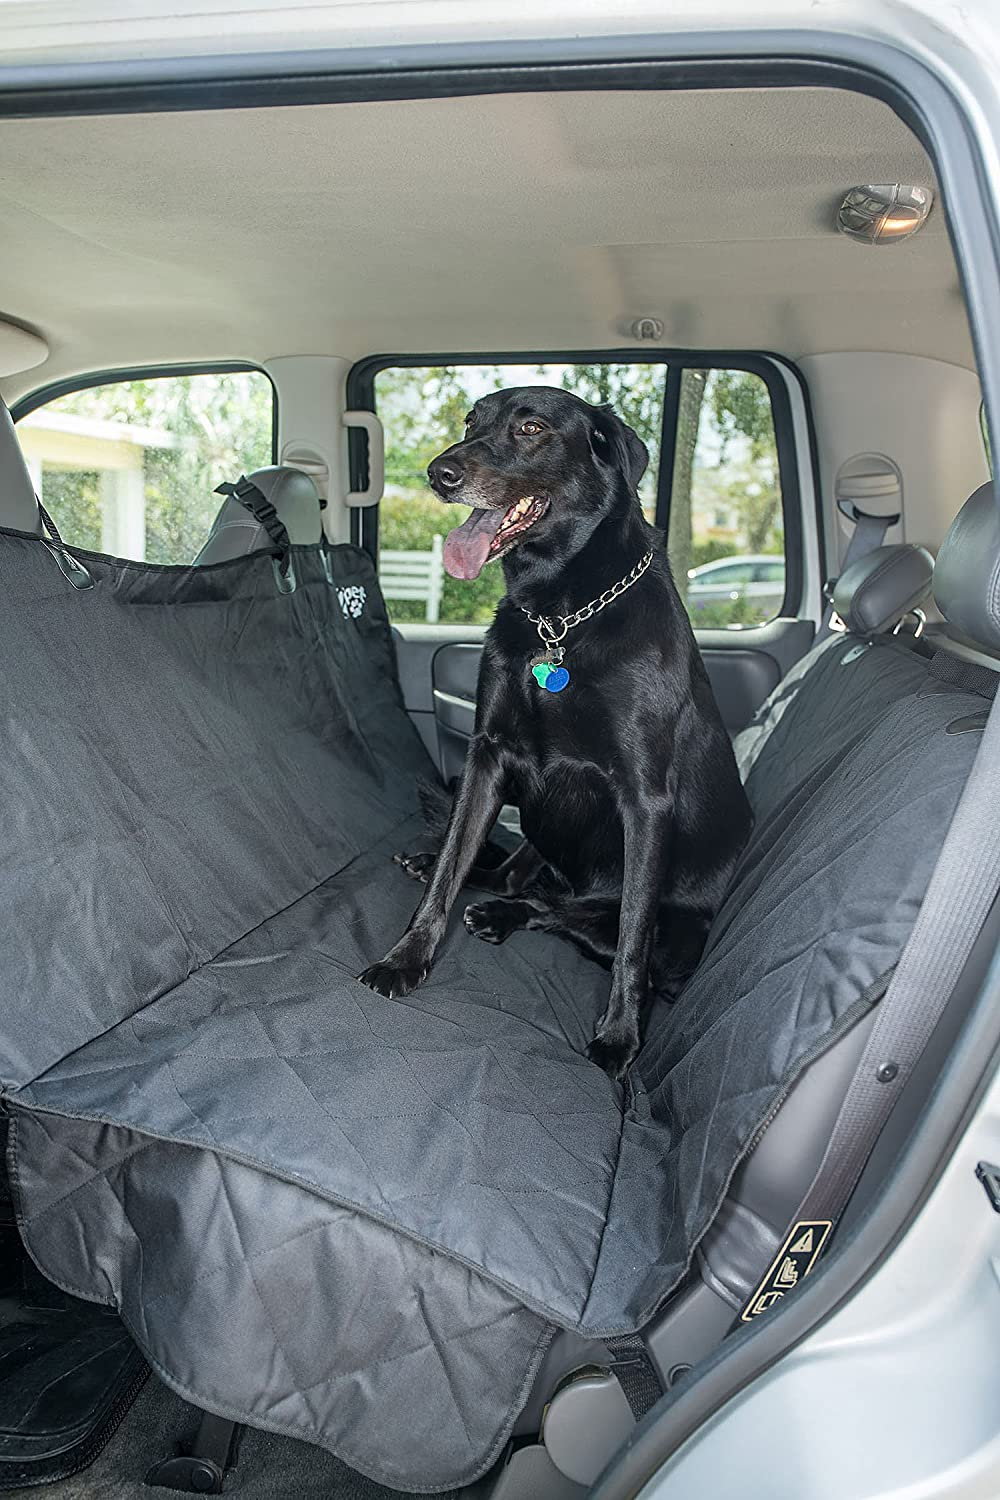 Quilted Ebony Black Back Seat Quilted Ebony Black Back Seat 2PET Backseat Cover Quilted Deluxe by Dog Seat Cover for Cars, Trucks and SUV Secure Fit- Waterproof, Predects from Dust, Hair, Dirt and Water Black